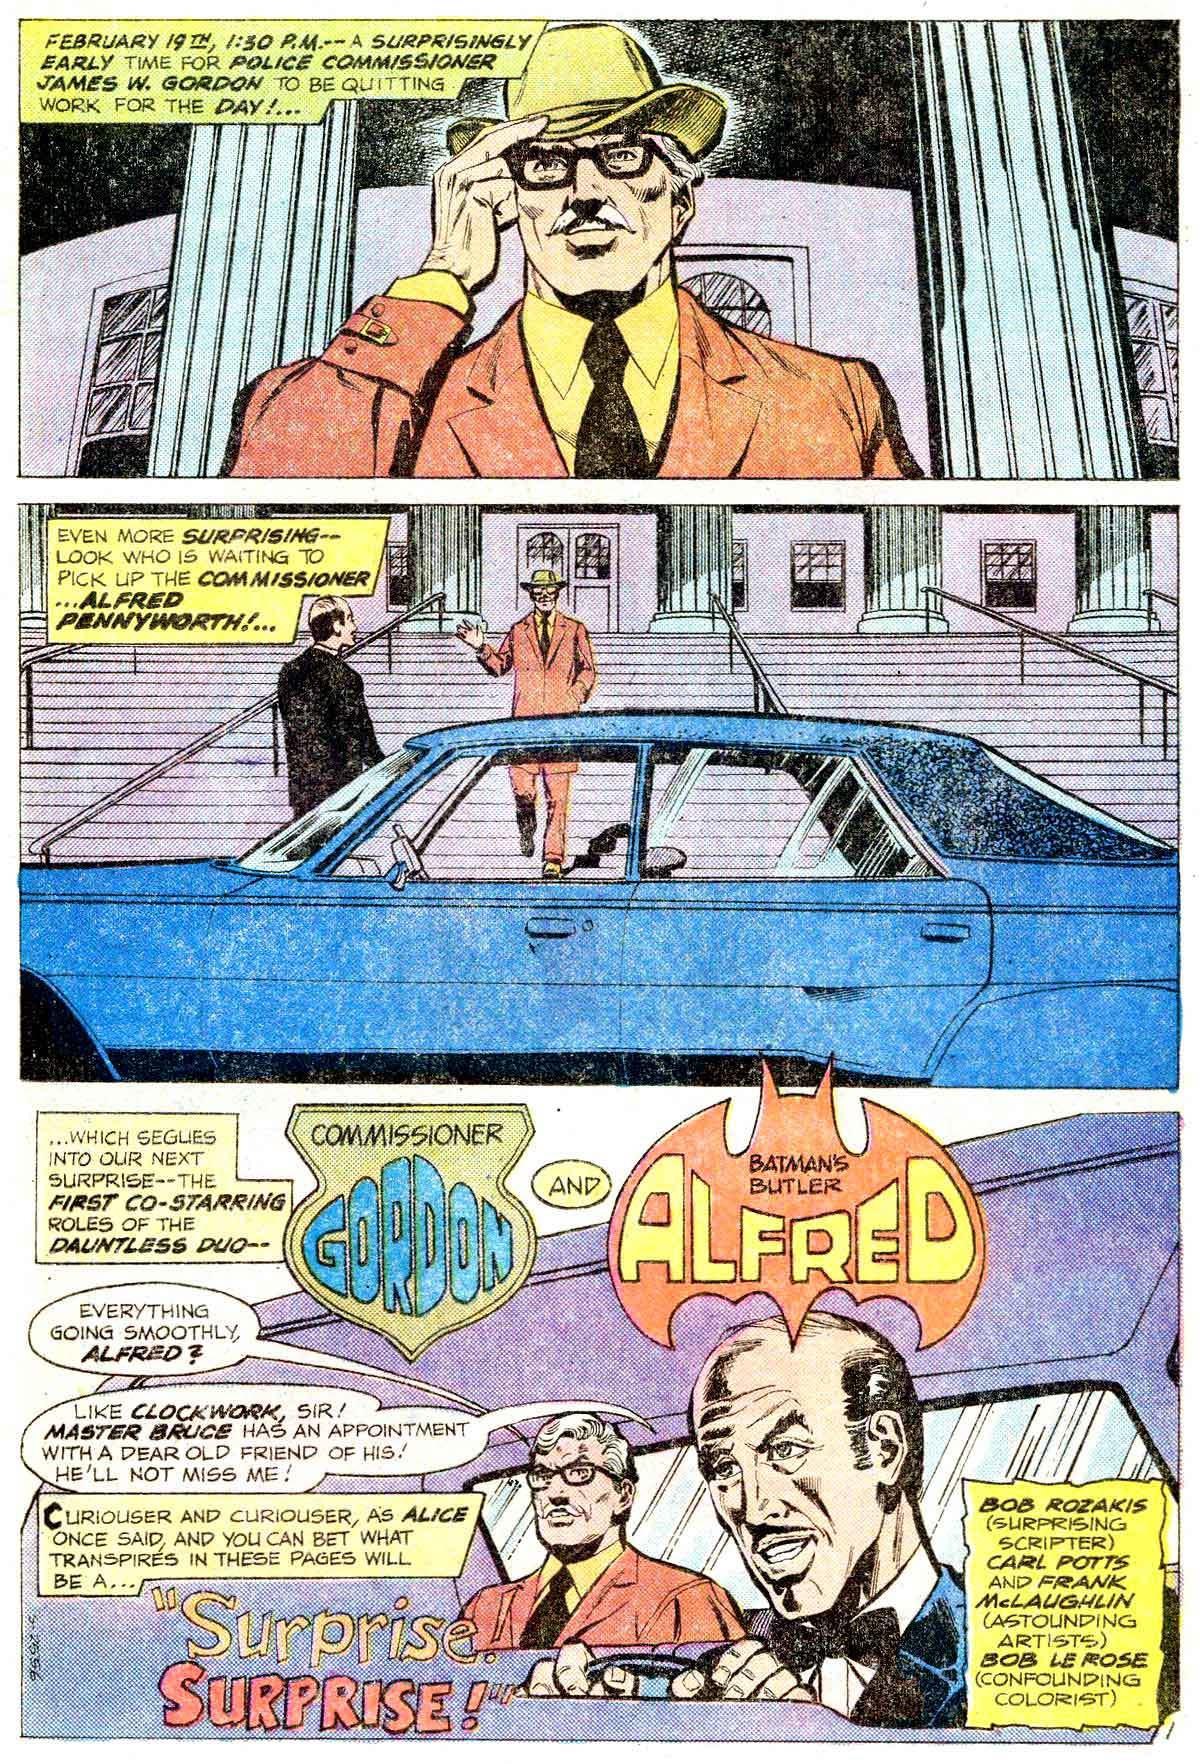 Batman Family (1975) #11, interior page penciled by Carl Potts & inked by Frank McLaughlin.